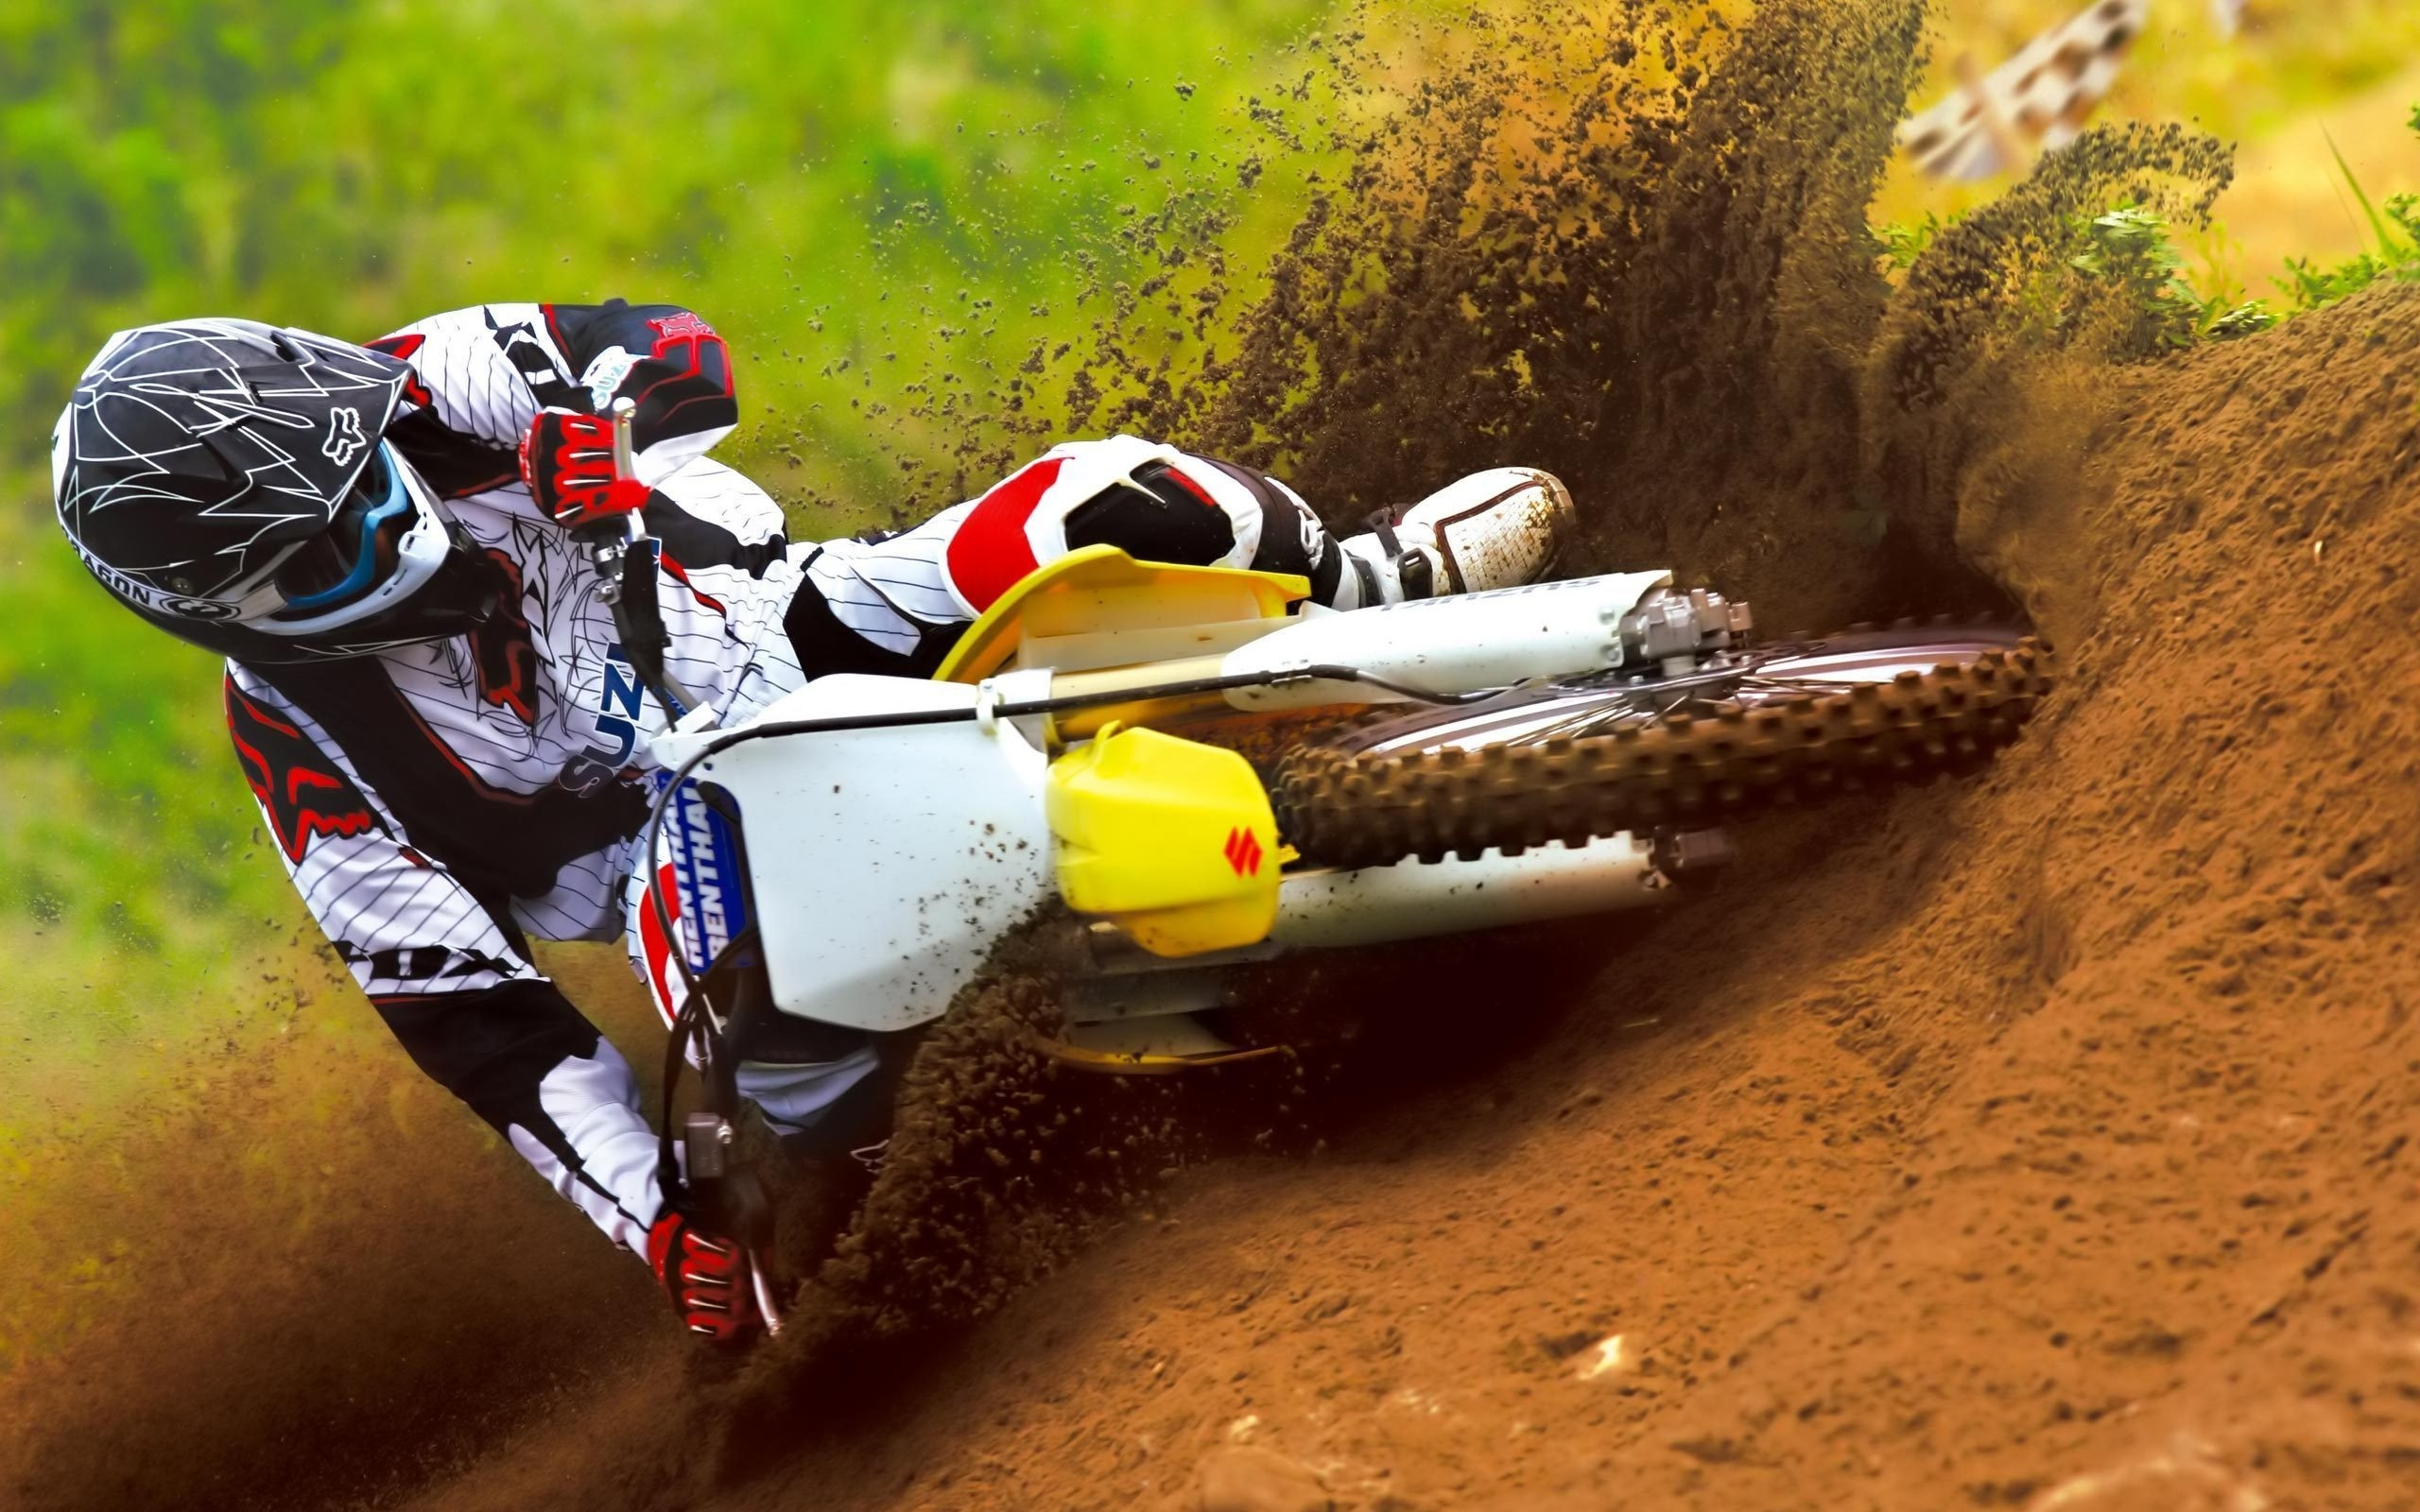 Motocross dirt hd